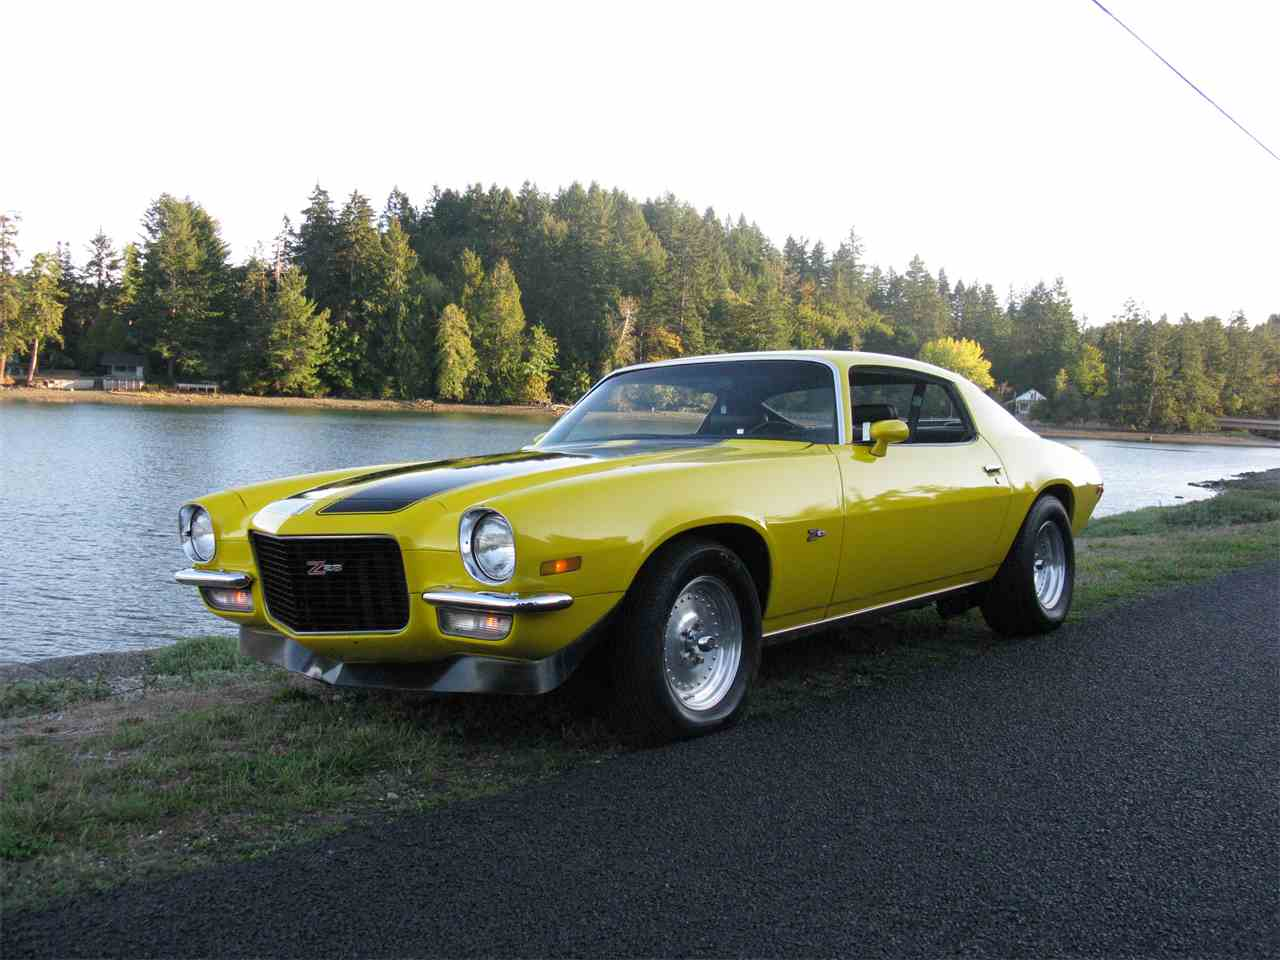 1970 chevrolet camaro z28 for sale cc - Camaro z28 ...